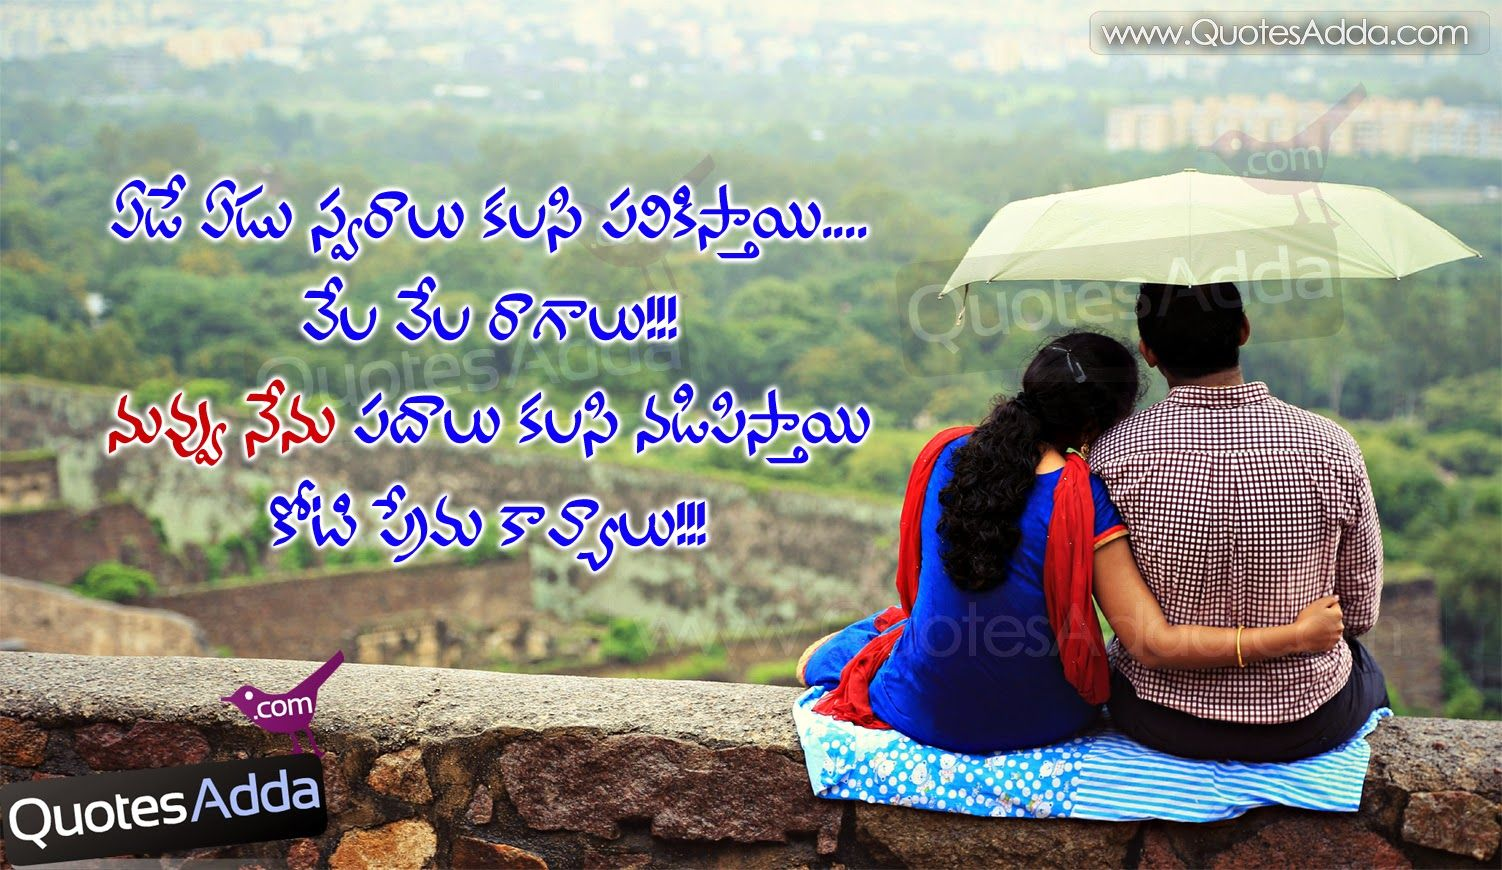 Telugu Love Quotes Pleasing Funny Love Proposal Quotes Best Telugu Beautiful Love Quotations